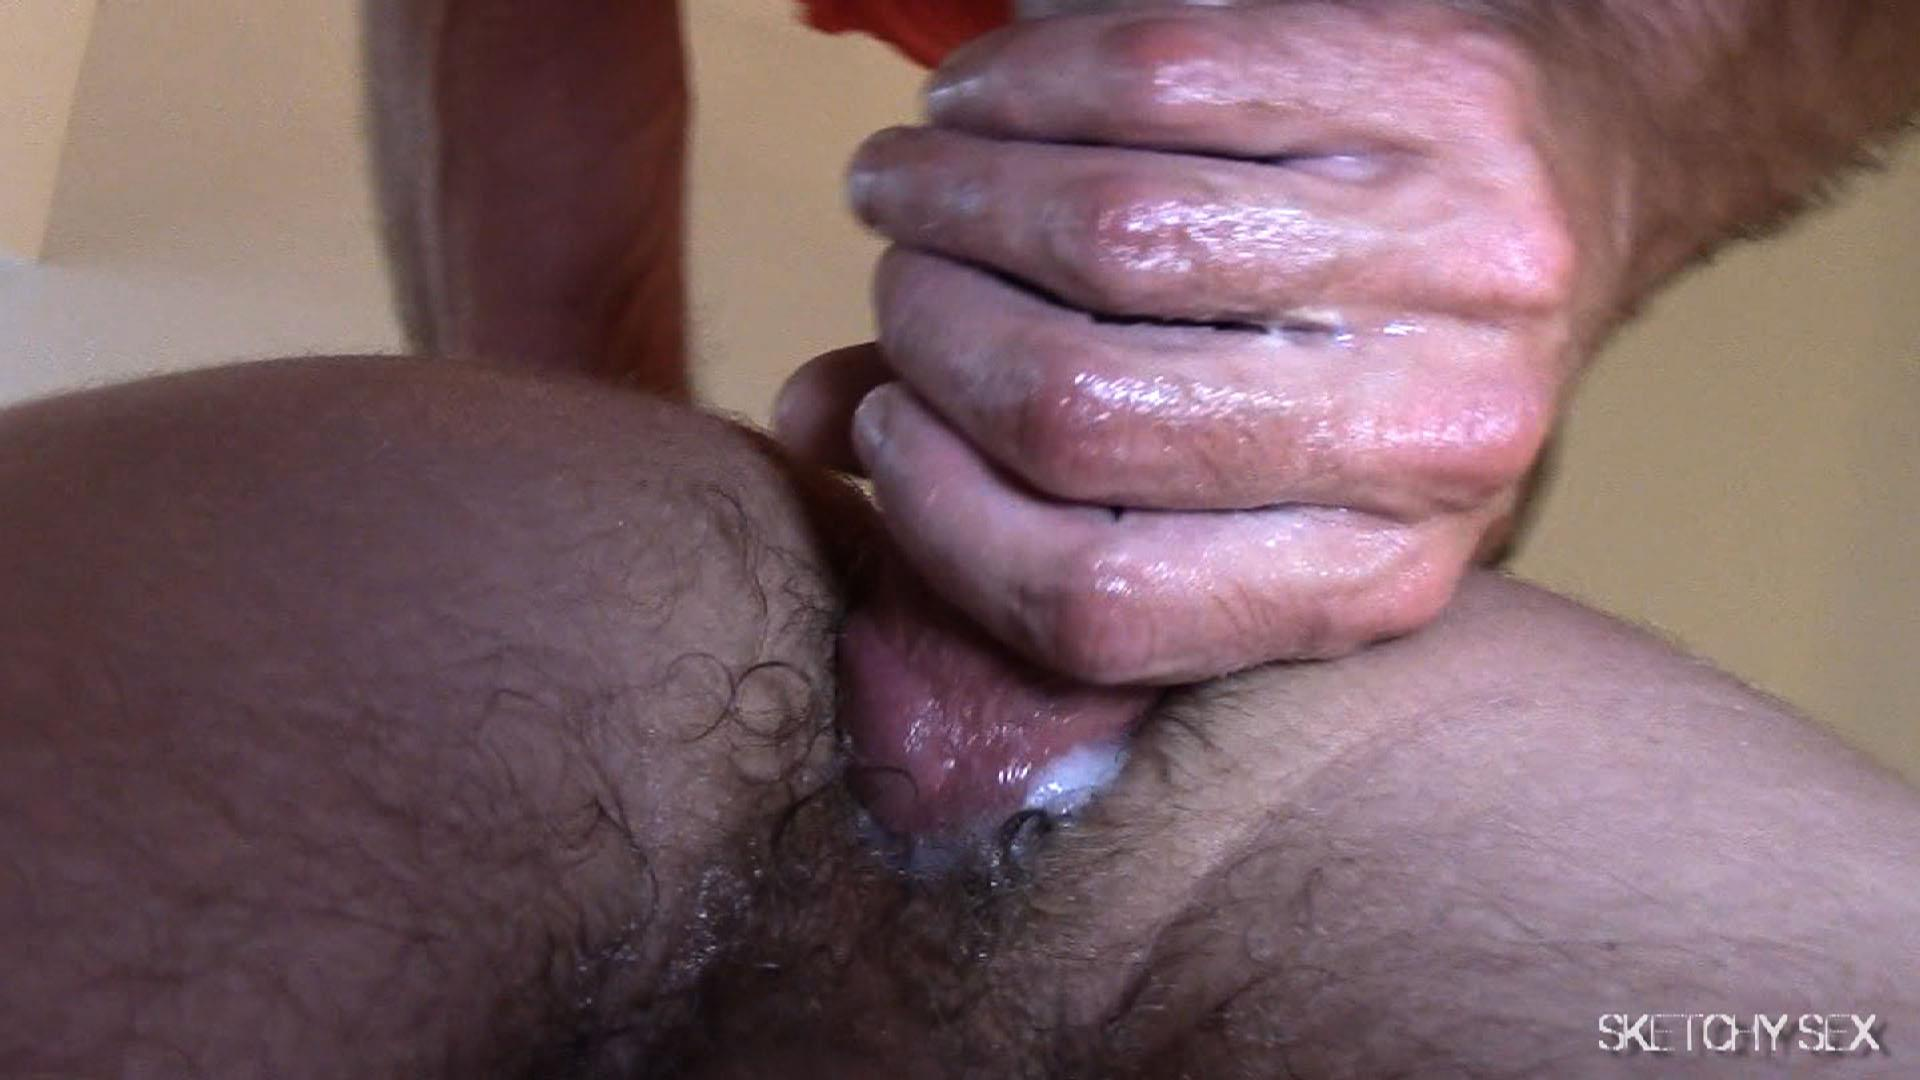 Sketchy-Sex-Nate-Getting-Fucked-Bareback-By-A-10-Inch-Craigslist-Cock-Amateur-Gay-Porn-10 Taking A 10